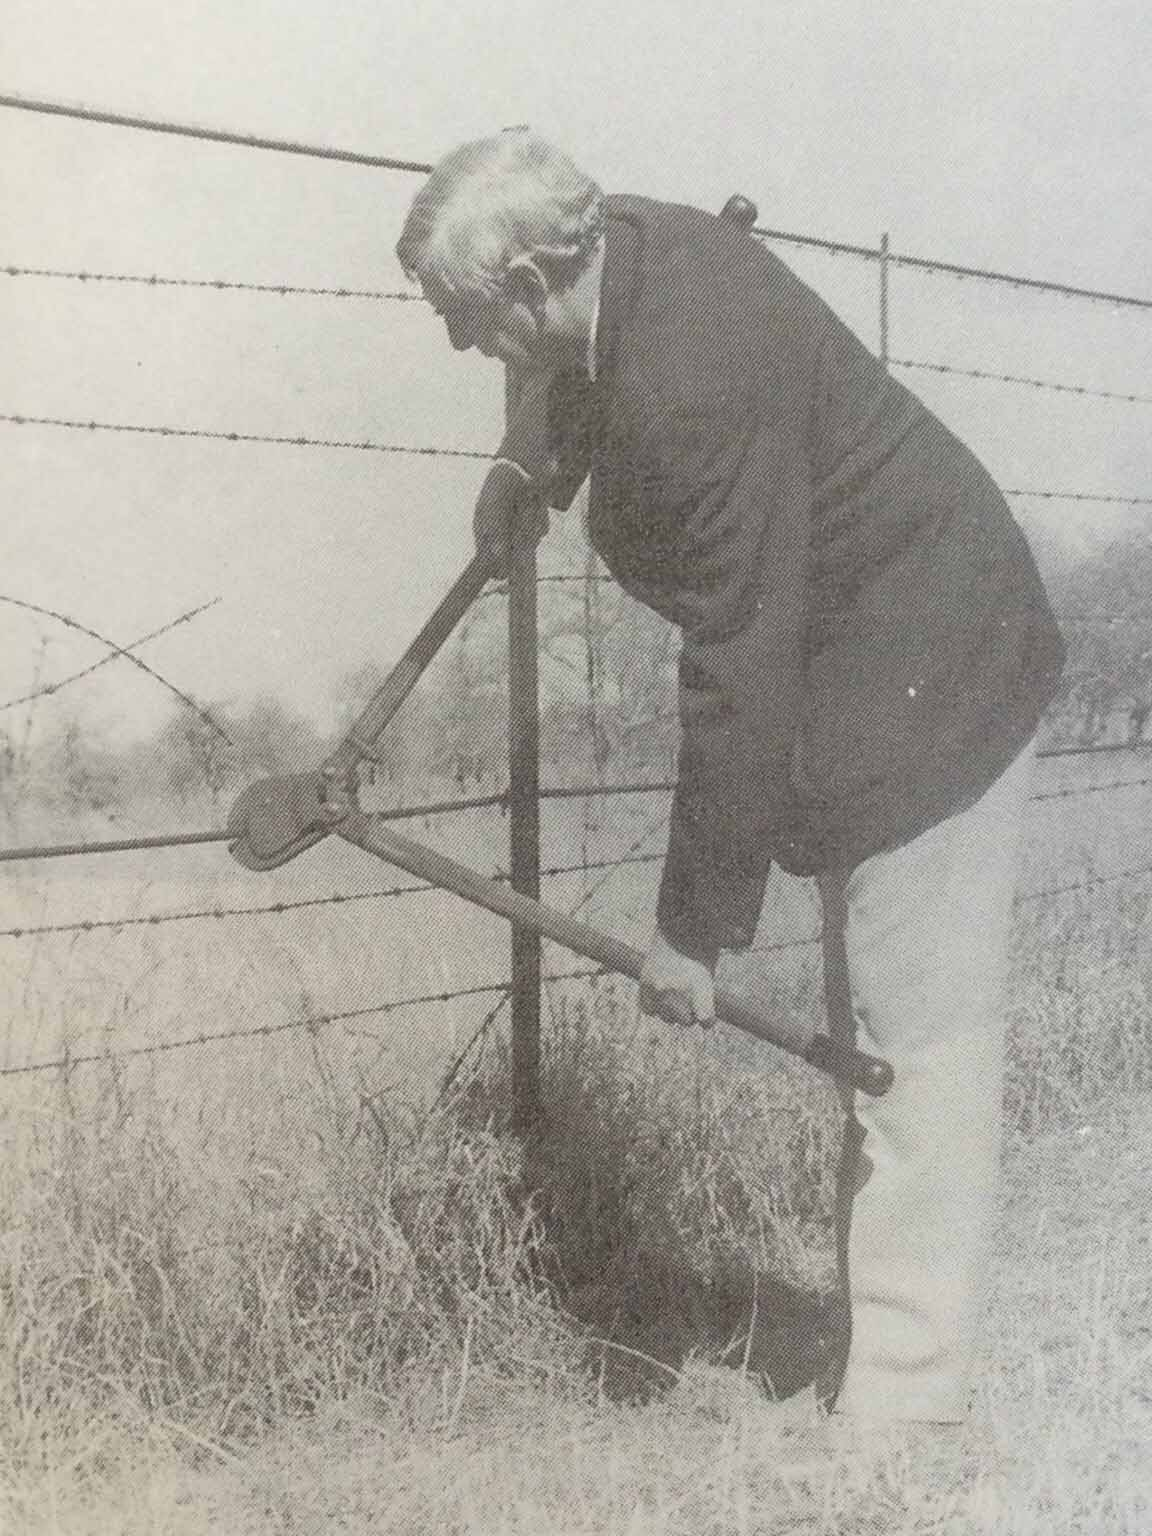 anie Hough, Administrator of the Transvaal, cuts through part of the fence.